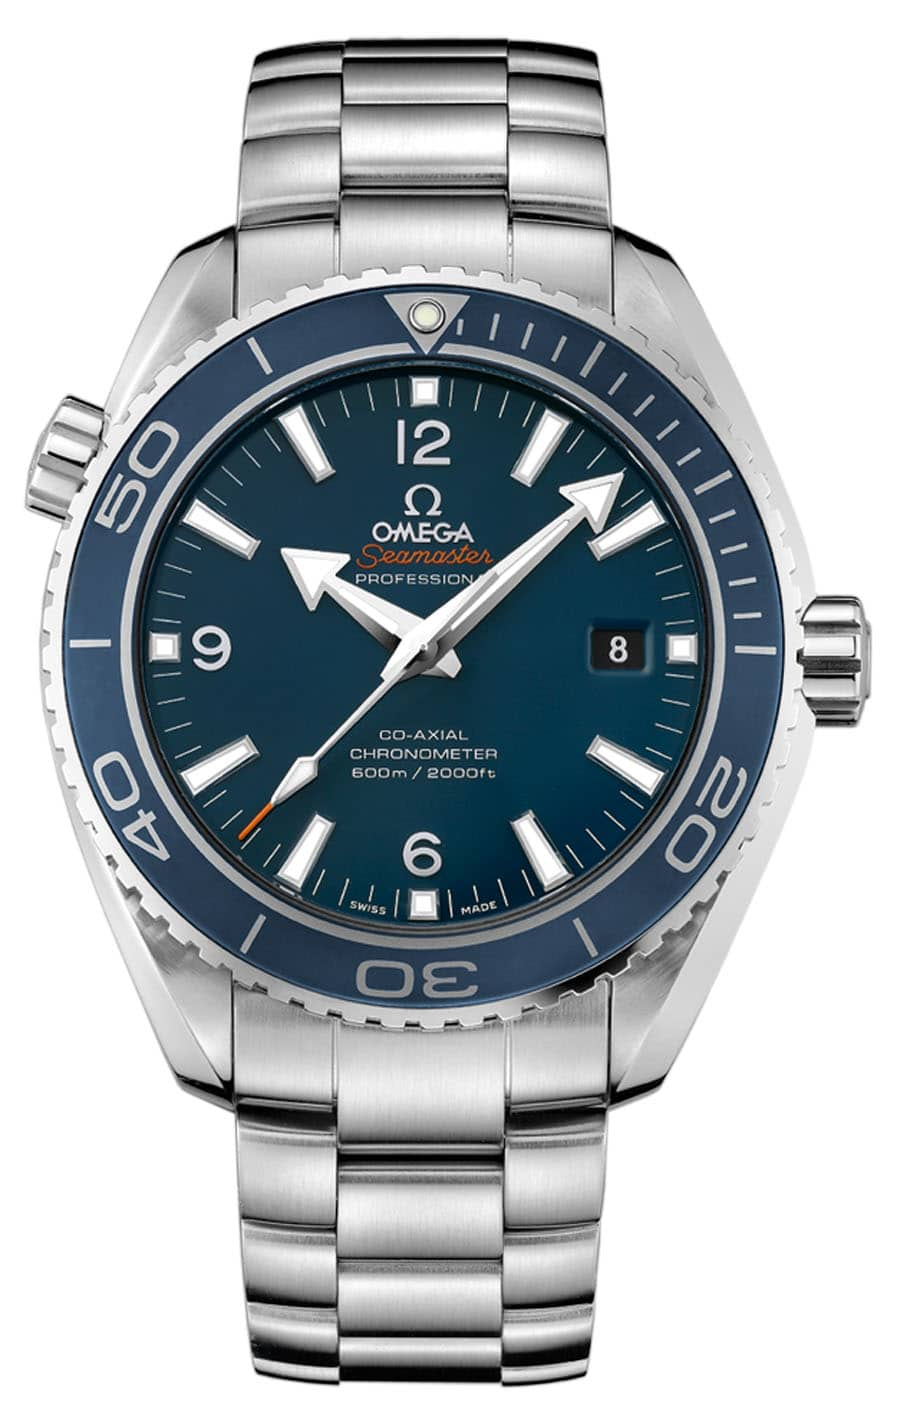 Uhren-Ikonen und ihre Alternativen: Die Omega Seamaster Planet Ocean 600 M Omega Co-Axial 45.5 mm